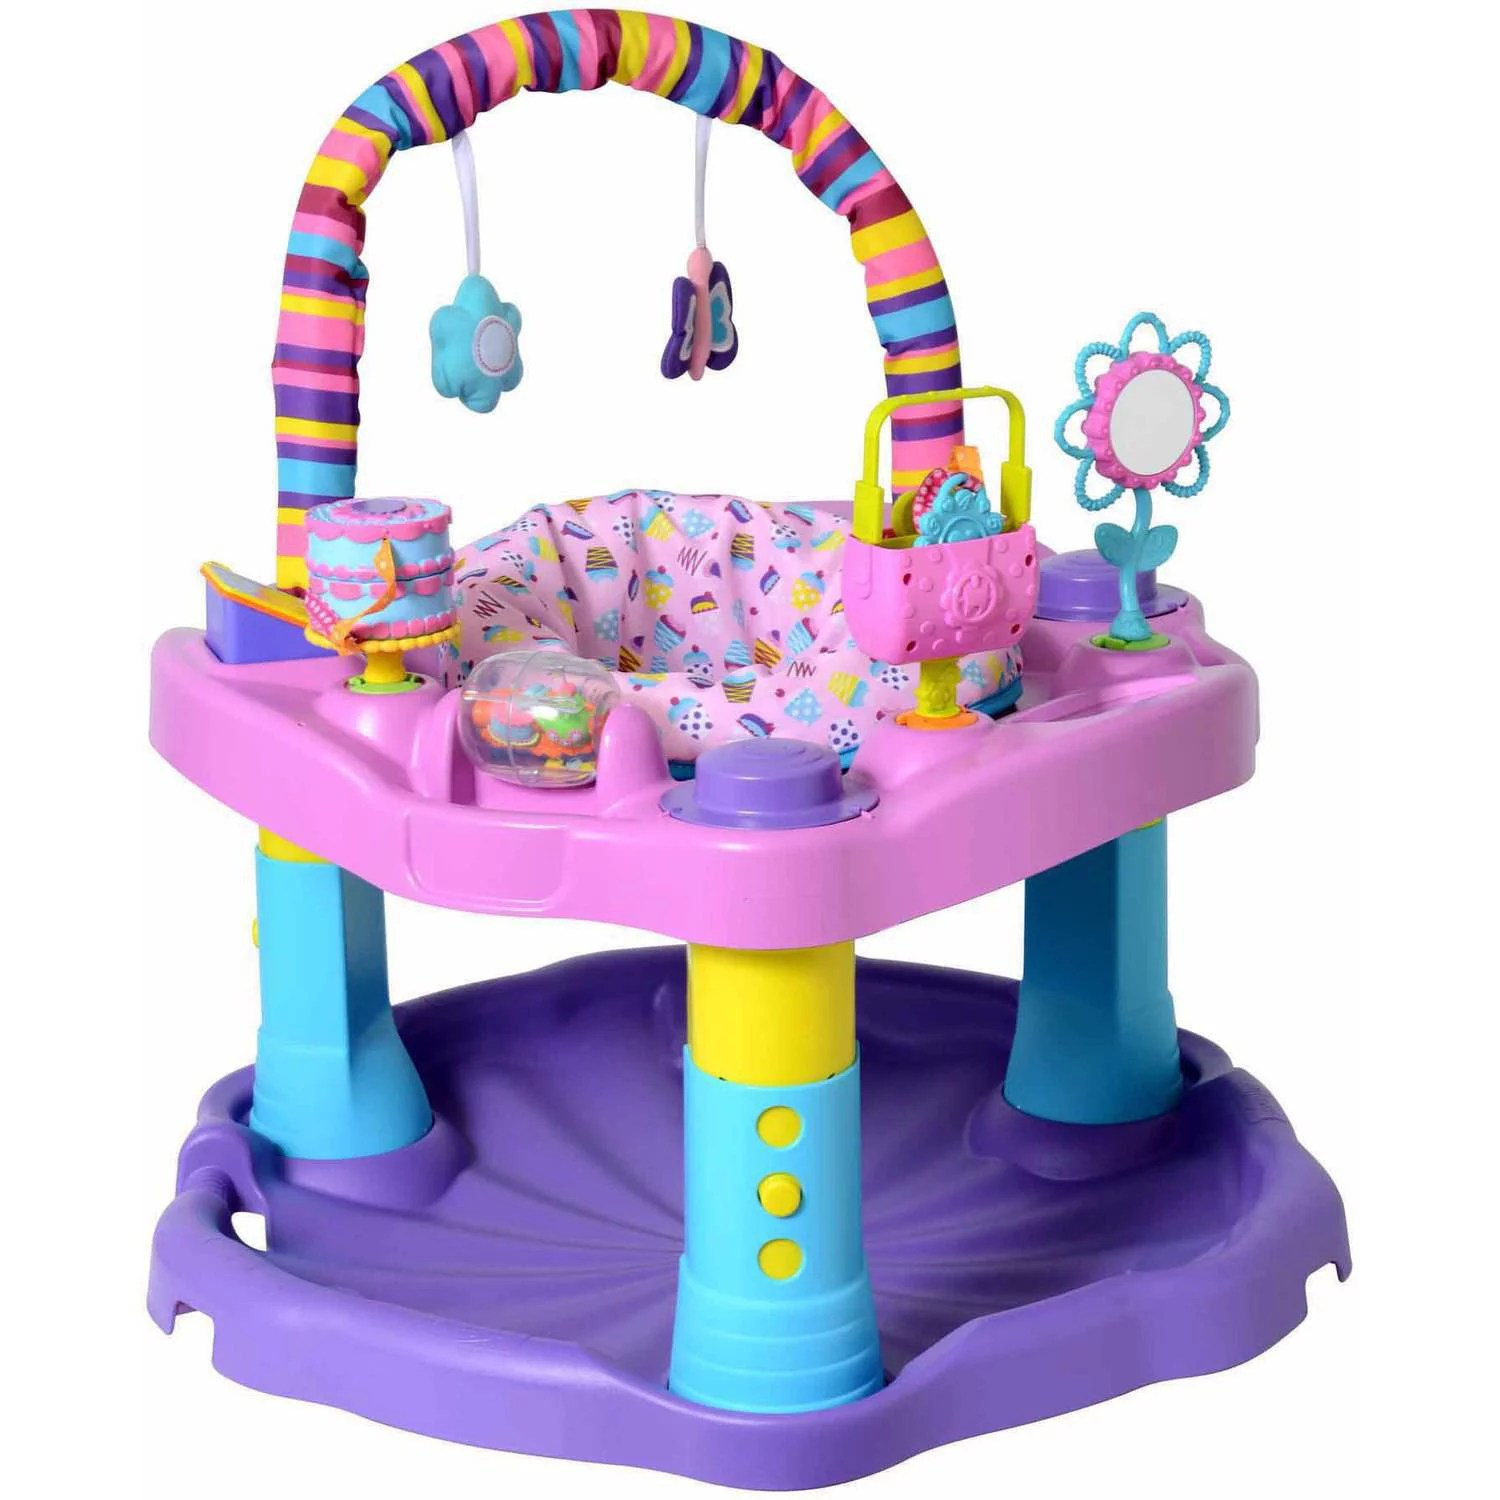 Exersaucer Canadian Tire Evenflo Exersaucer Bounce And Learn Sweet Tea Party